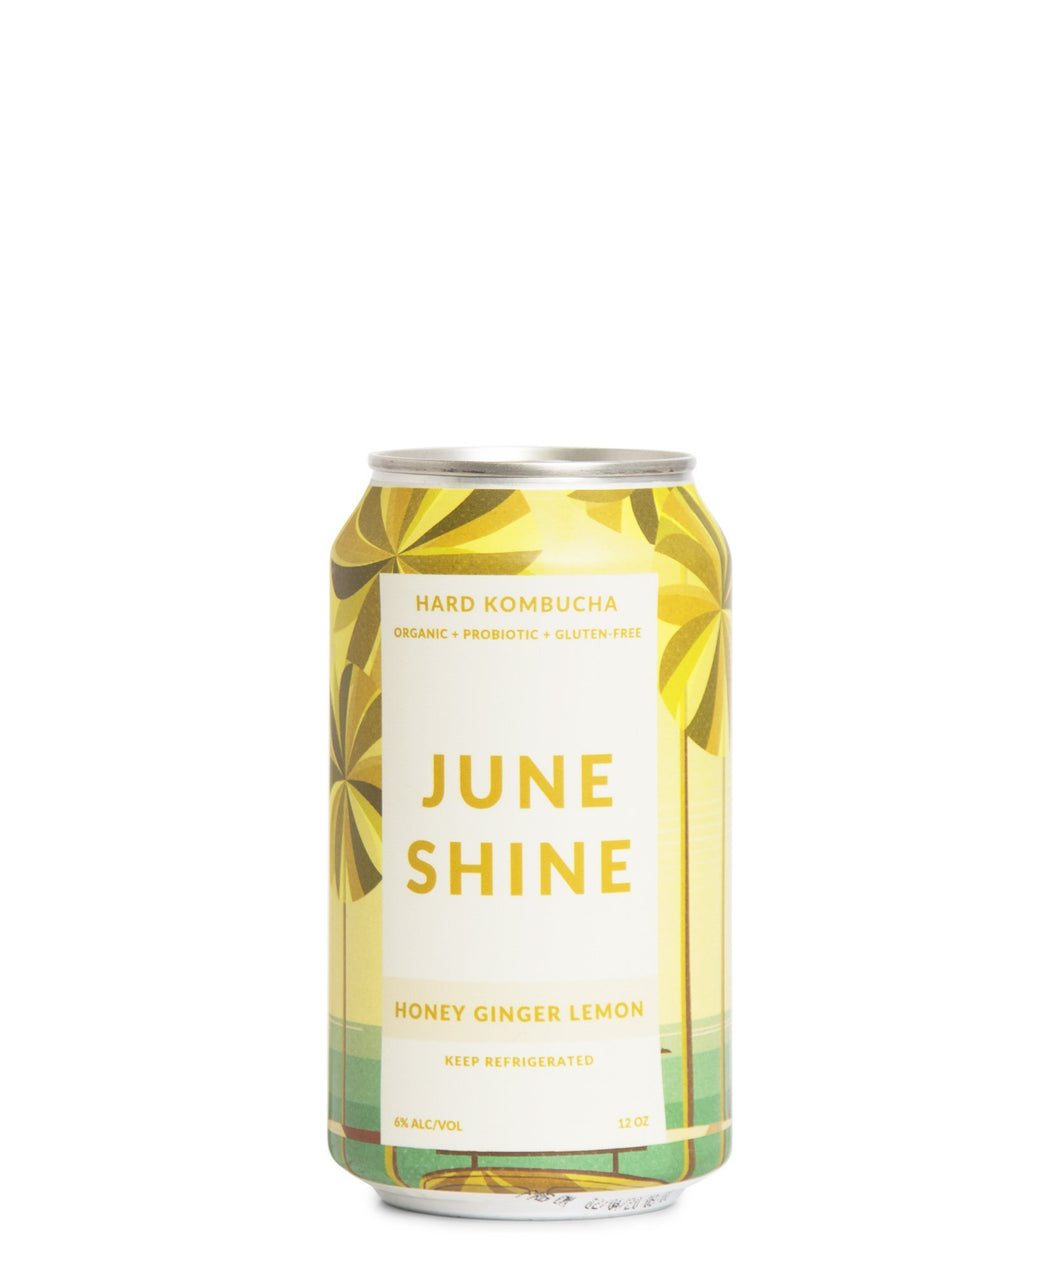 Honey Ginger Lemon - Juneshine Delivered By TapRm